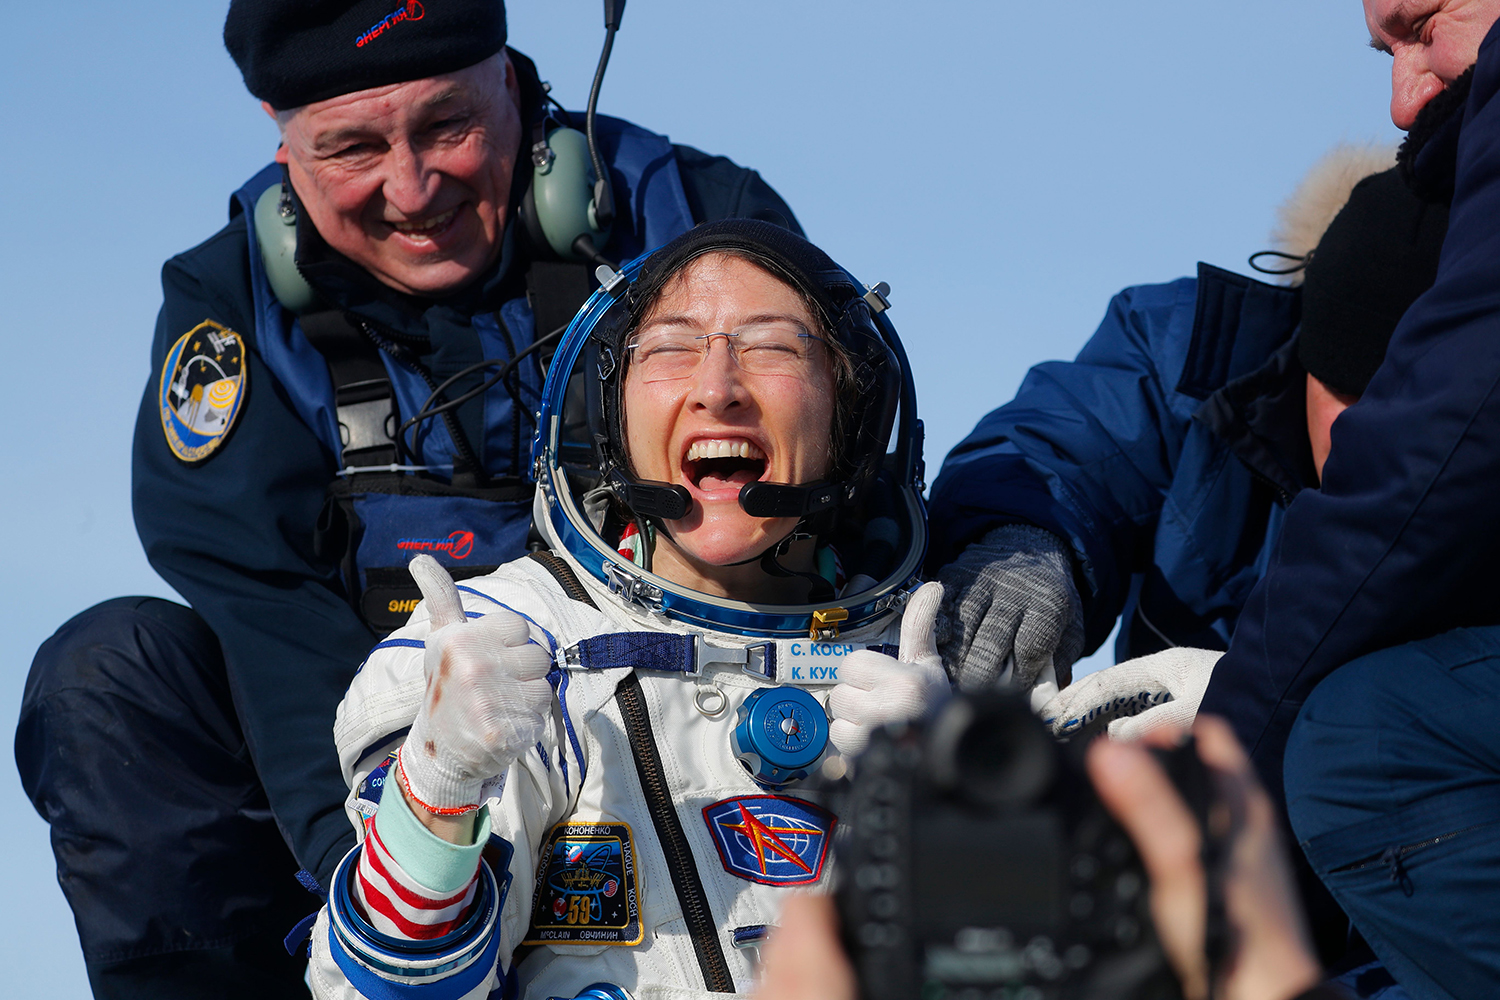 NASA astronaut Christina Koch reacts shortly after landing in a remote area outside the town of Dzhezkazgan, Kazakhstan, on Feb. 6. Koch returned to Earth safely having shattered the spaceflight record for female astronauts after almost a year aboard the International Space Station. SERGEI ILNITSKY/POOL/AFP via Getty Images